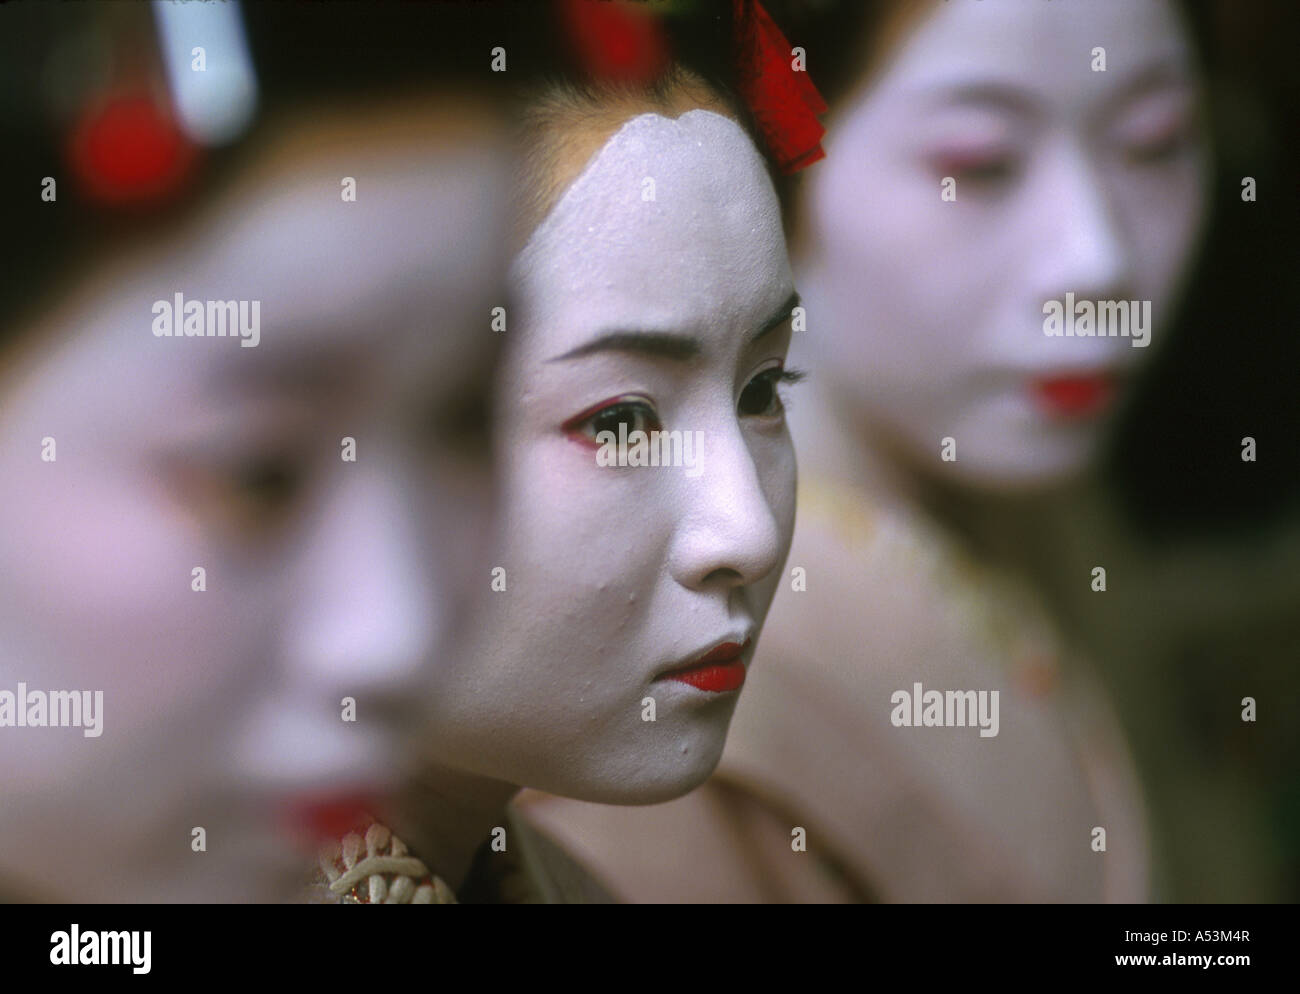 Painet ha1603 japan geisha women females ceremony gion kyoto